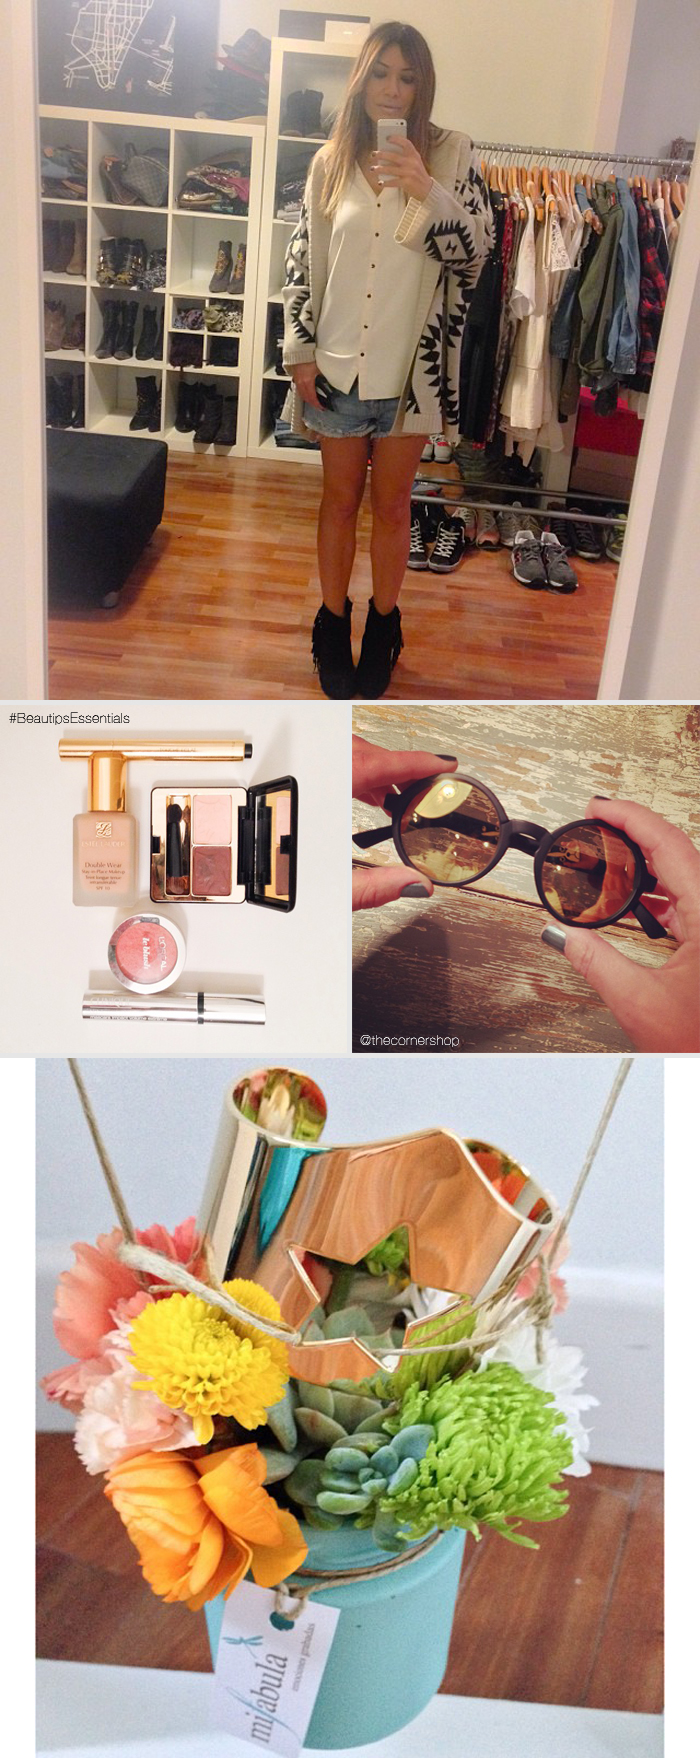 notes of the week instagram tumblr photography travels instavideo barbara crespo events travels